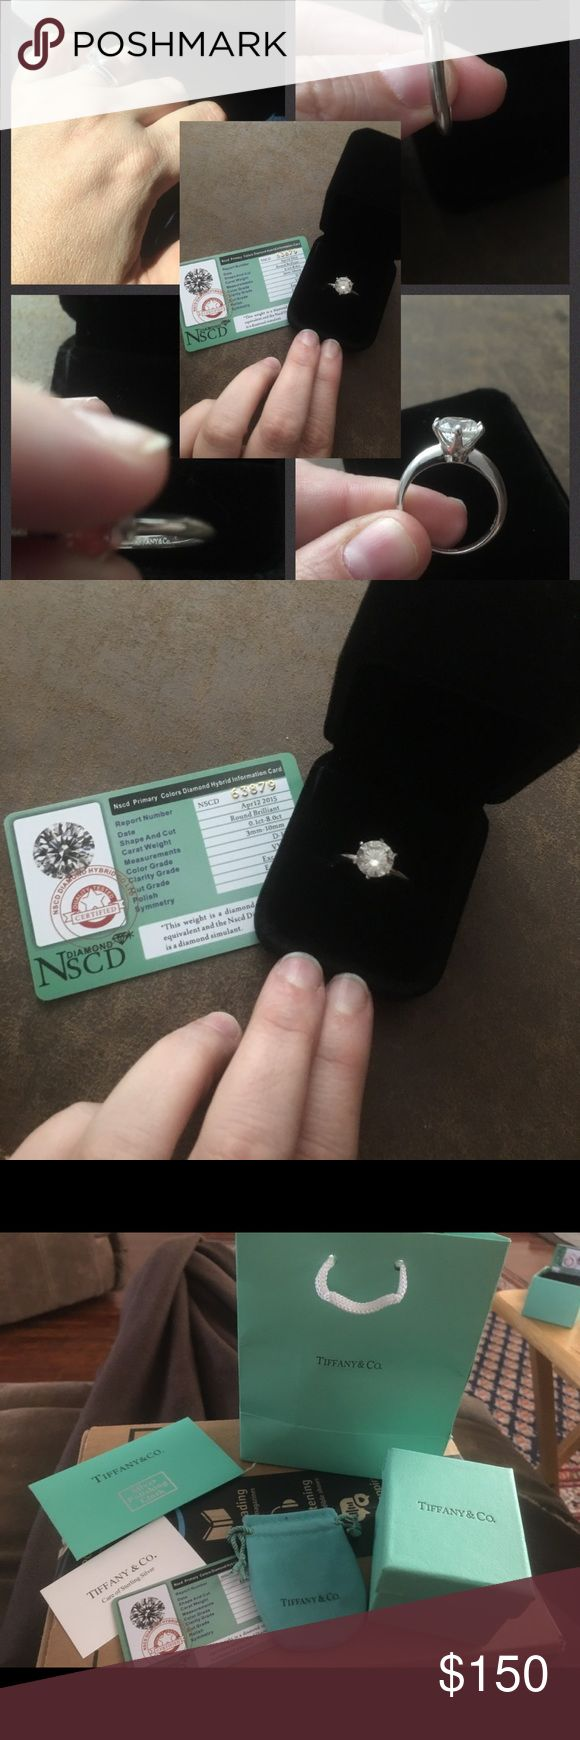 """925 Sterling Silver """"Tiffany & Co"""" Solitaire Ring 3.0 carat diamond hybrid, size 9, stamped Sterling Silver, stamped Tiffany & Company. Looks very much like the real deal. Comes with all gift box and storage items pictures with Tiffany logo on all. Also comes with Sterling a silver Polishing cloth :) Tiffany & Co. Jewelry Rings"""